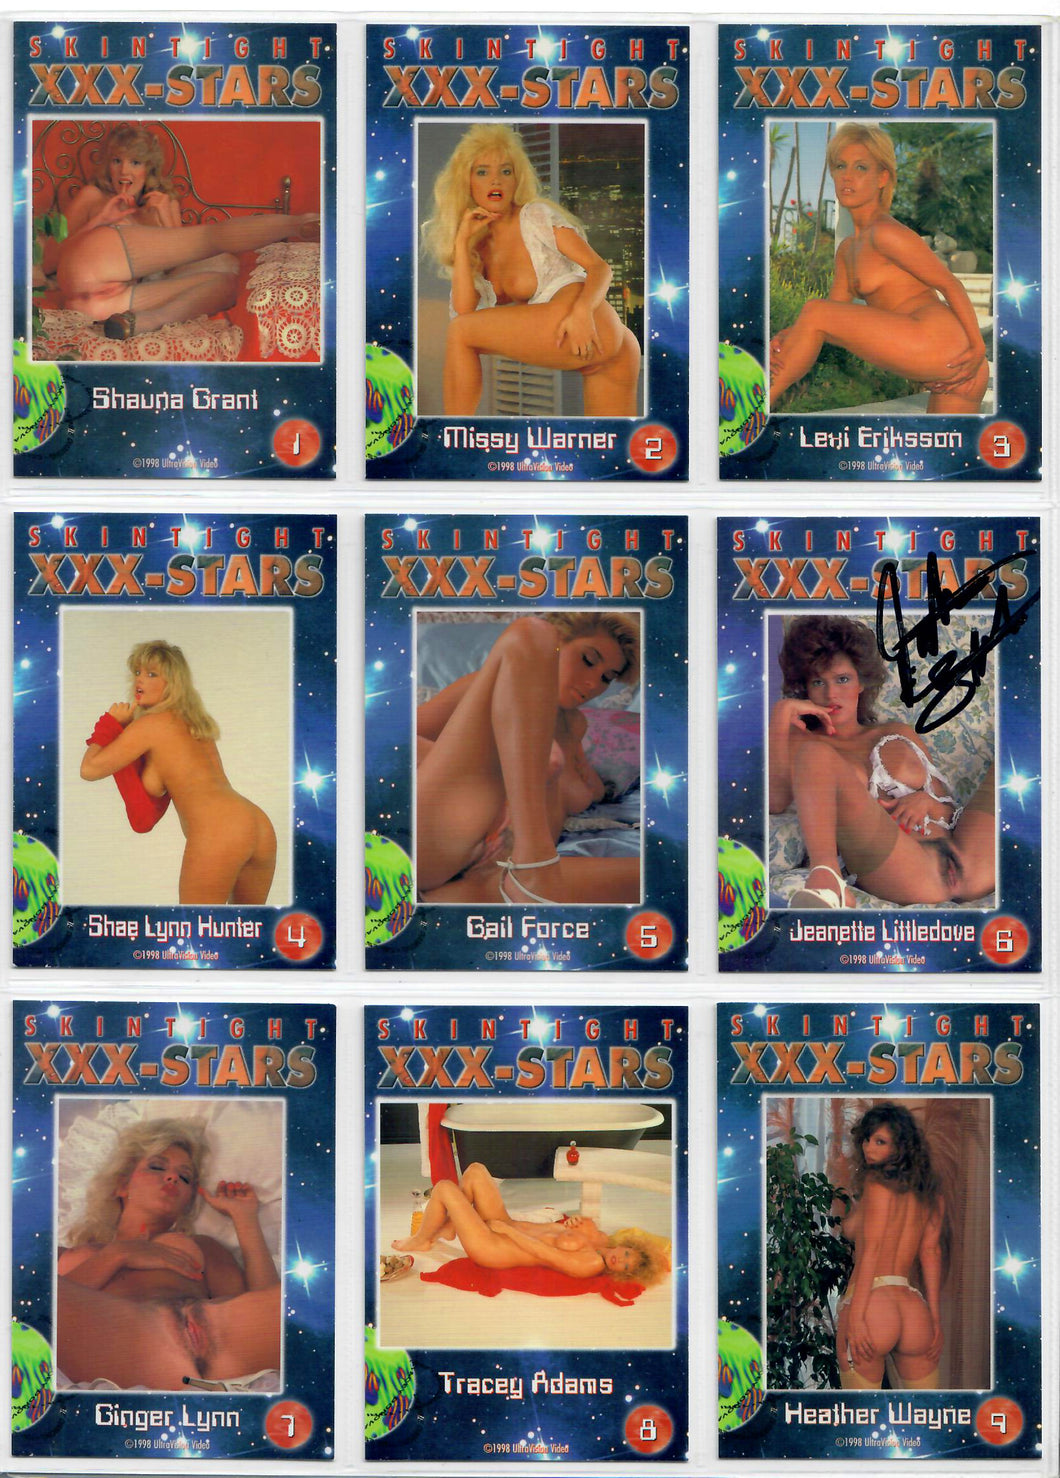 Skintight - XXX-Stars - Complete 18 Card Set - Ultravision - Jeanette Littledove Autographed Card 6